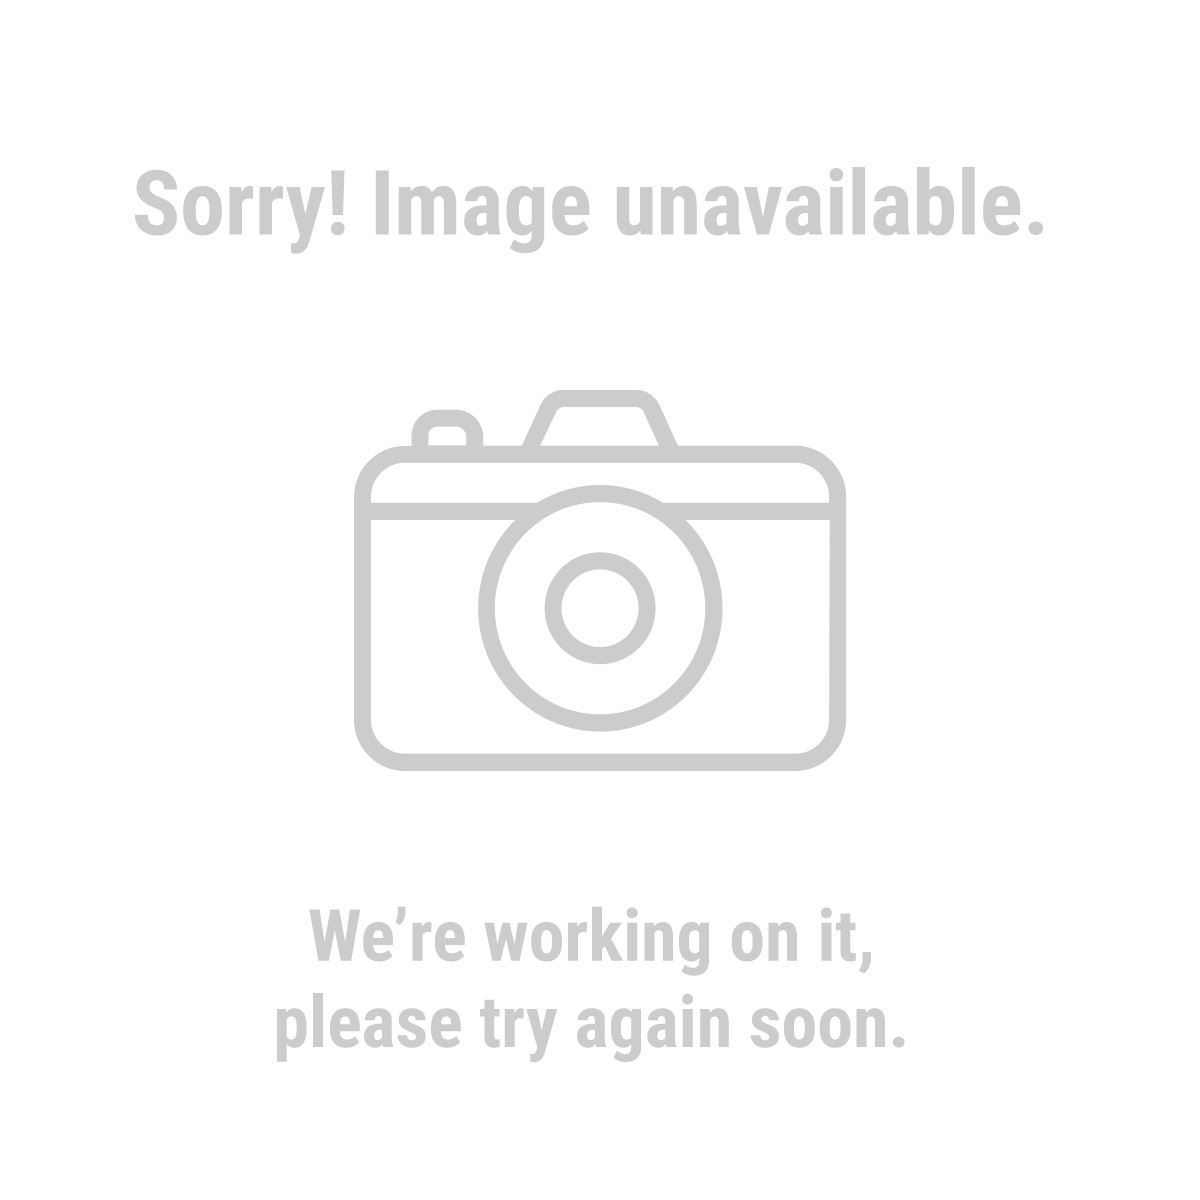 Haul-Master® 69148 1000 Lb. Capacity Hydraulic Table Cart